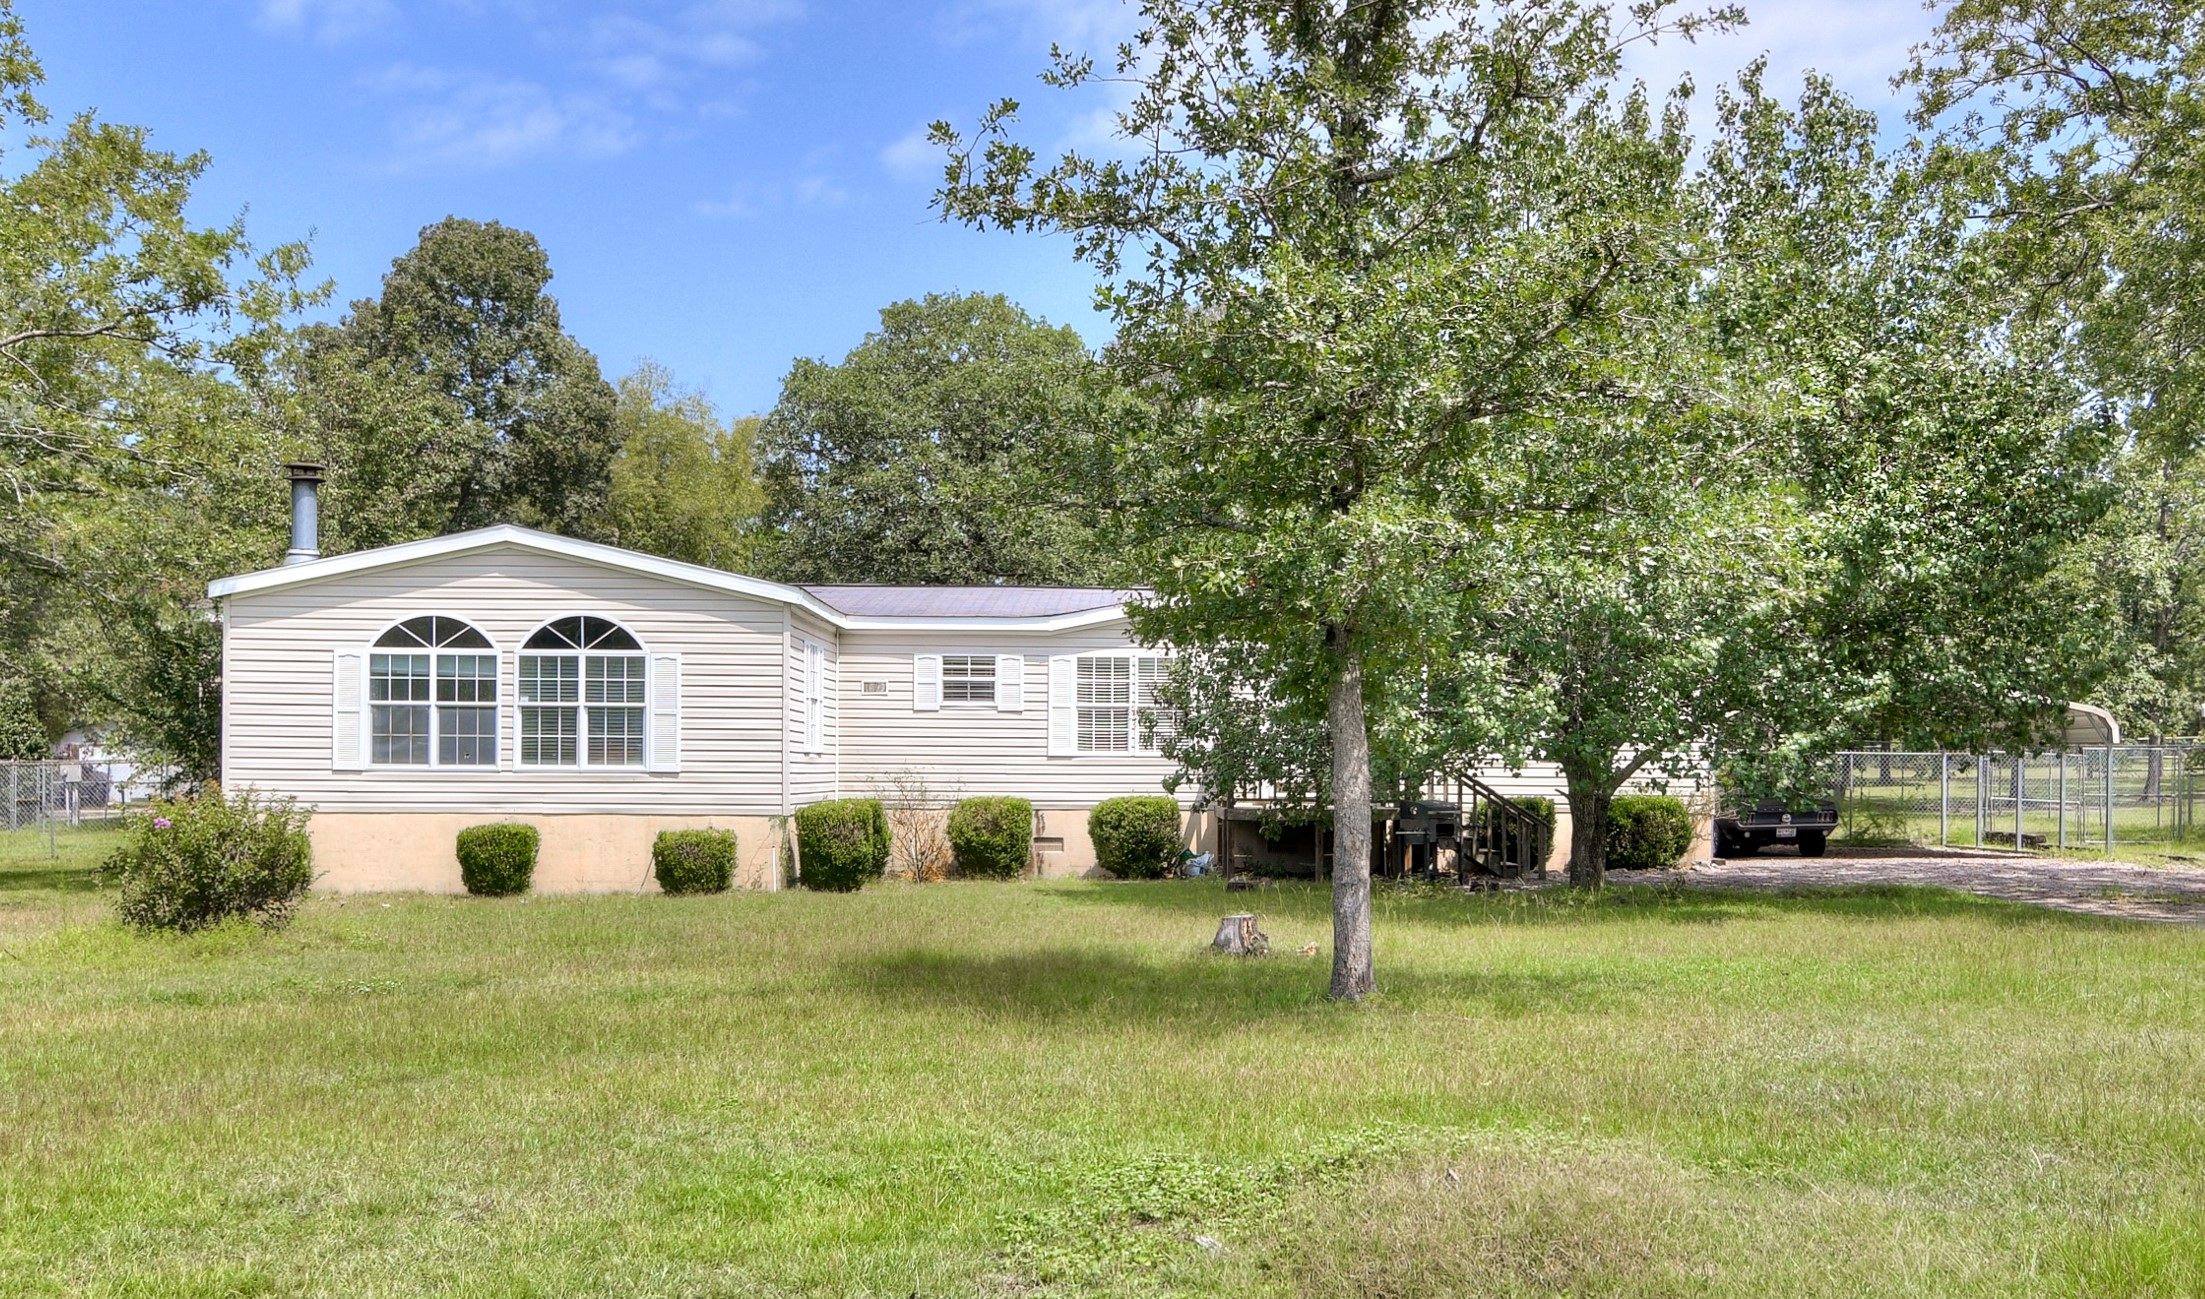 4-Bedroom Ranch on a Spacious Lot - Jim Hadden Home Sales